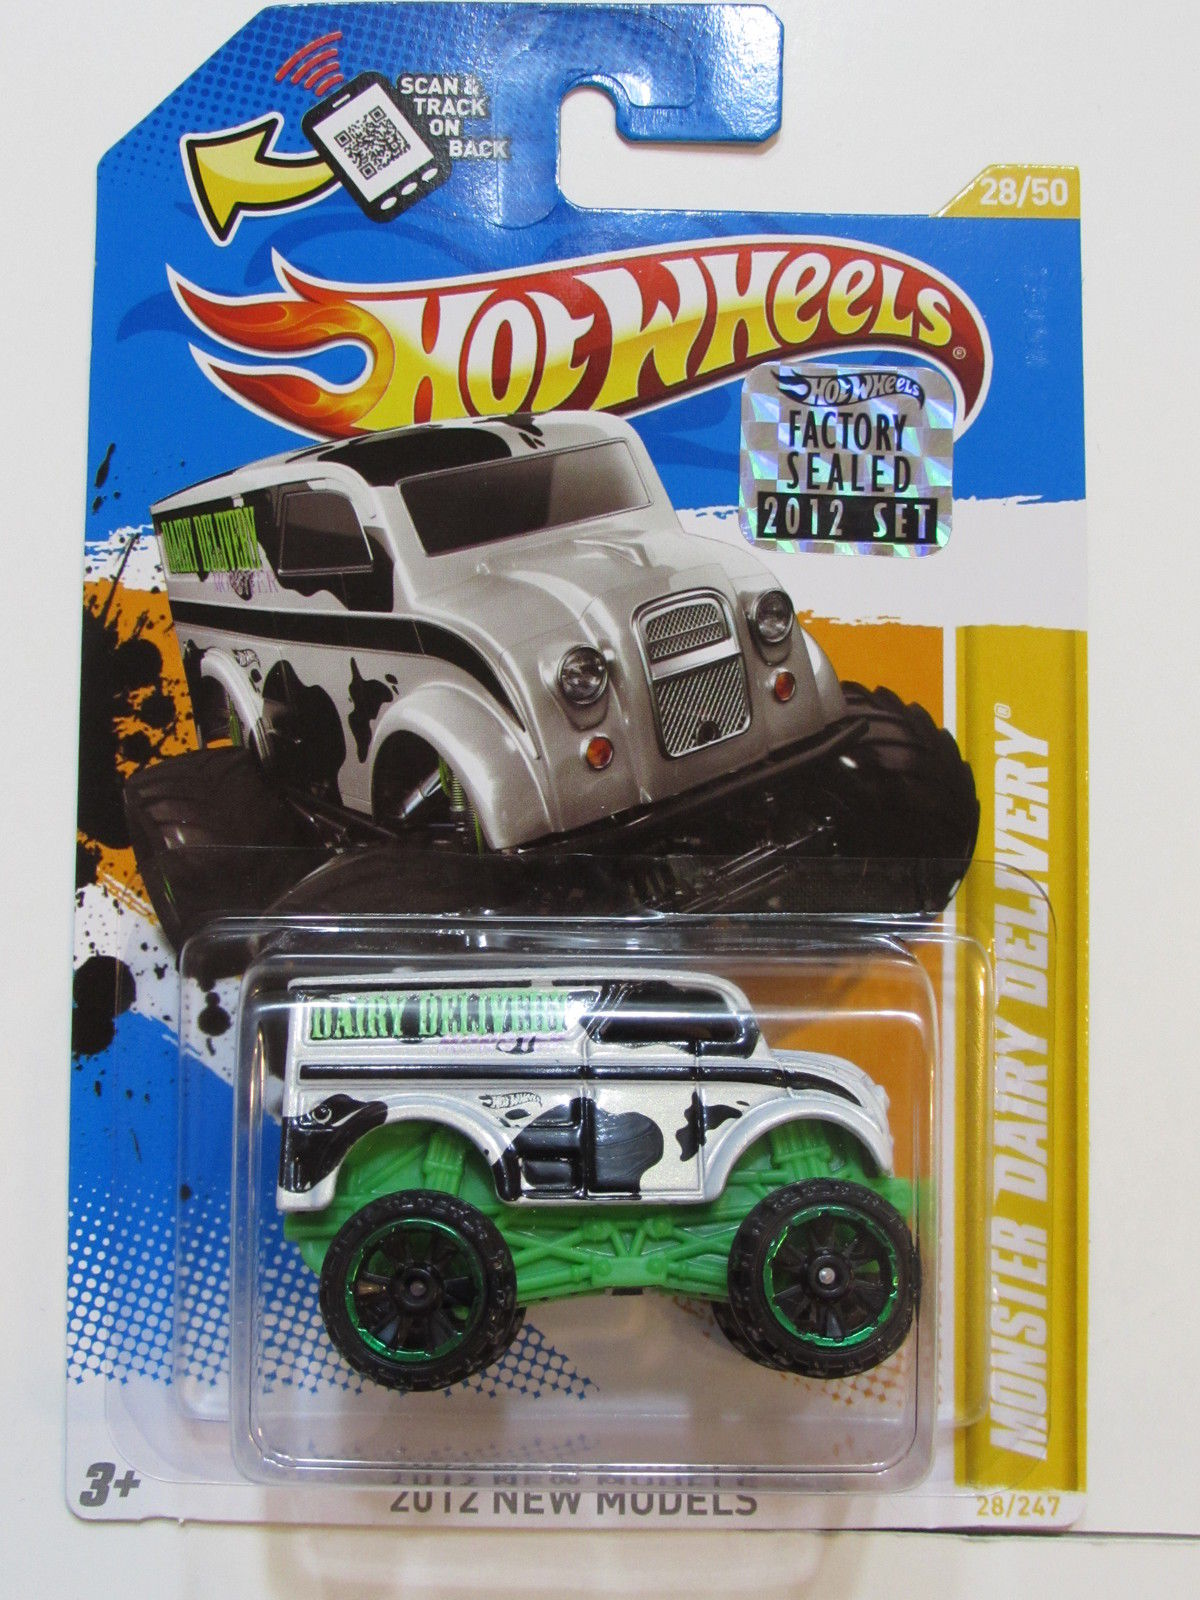 HOT WHEELS 2012 NEW MODELS - MONSTER DAIRY DELIVERY FACTORY SEALED